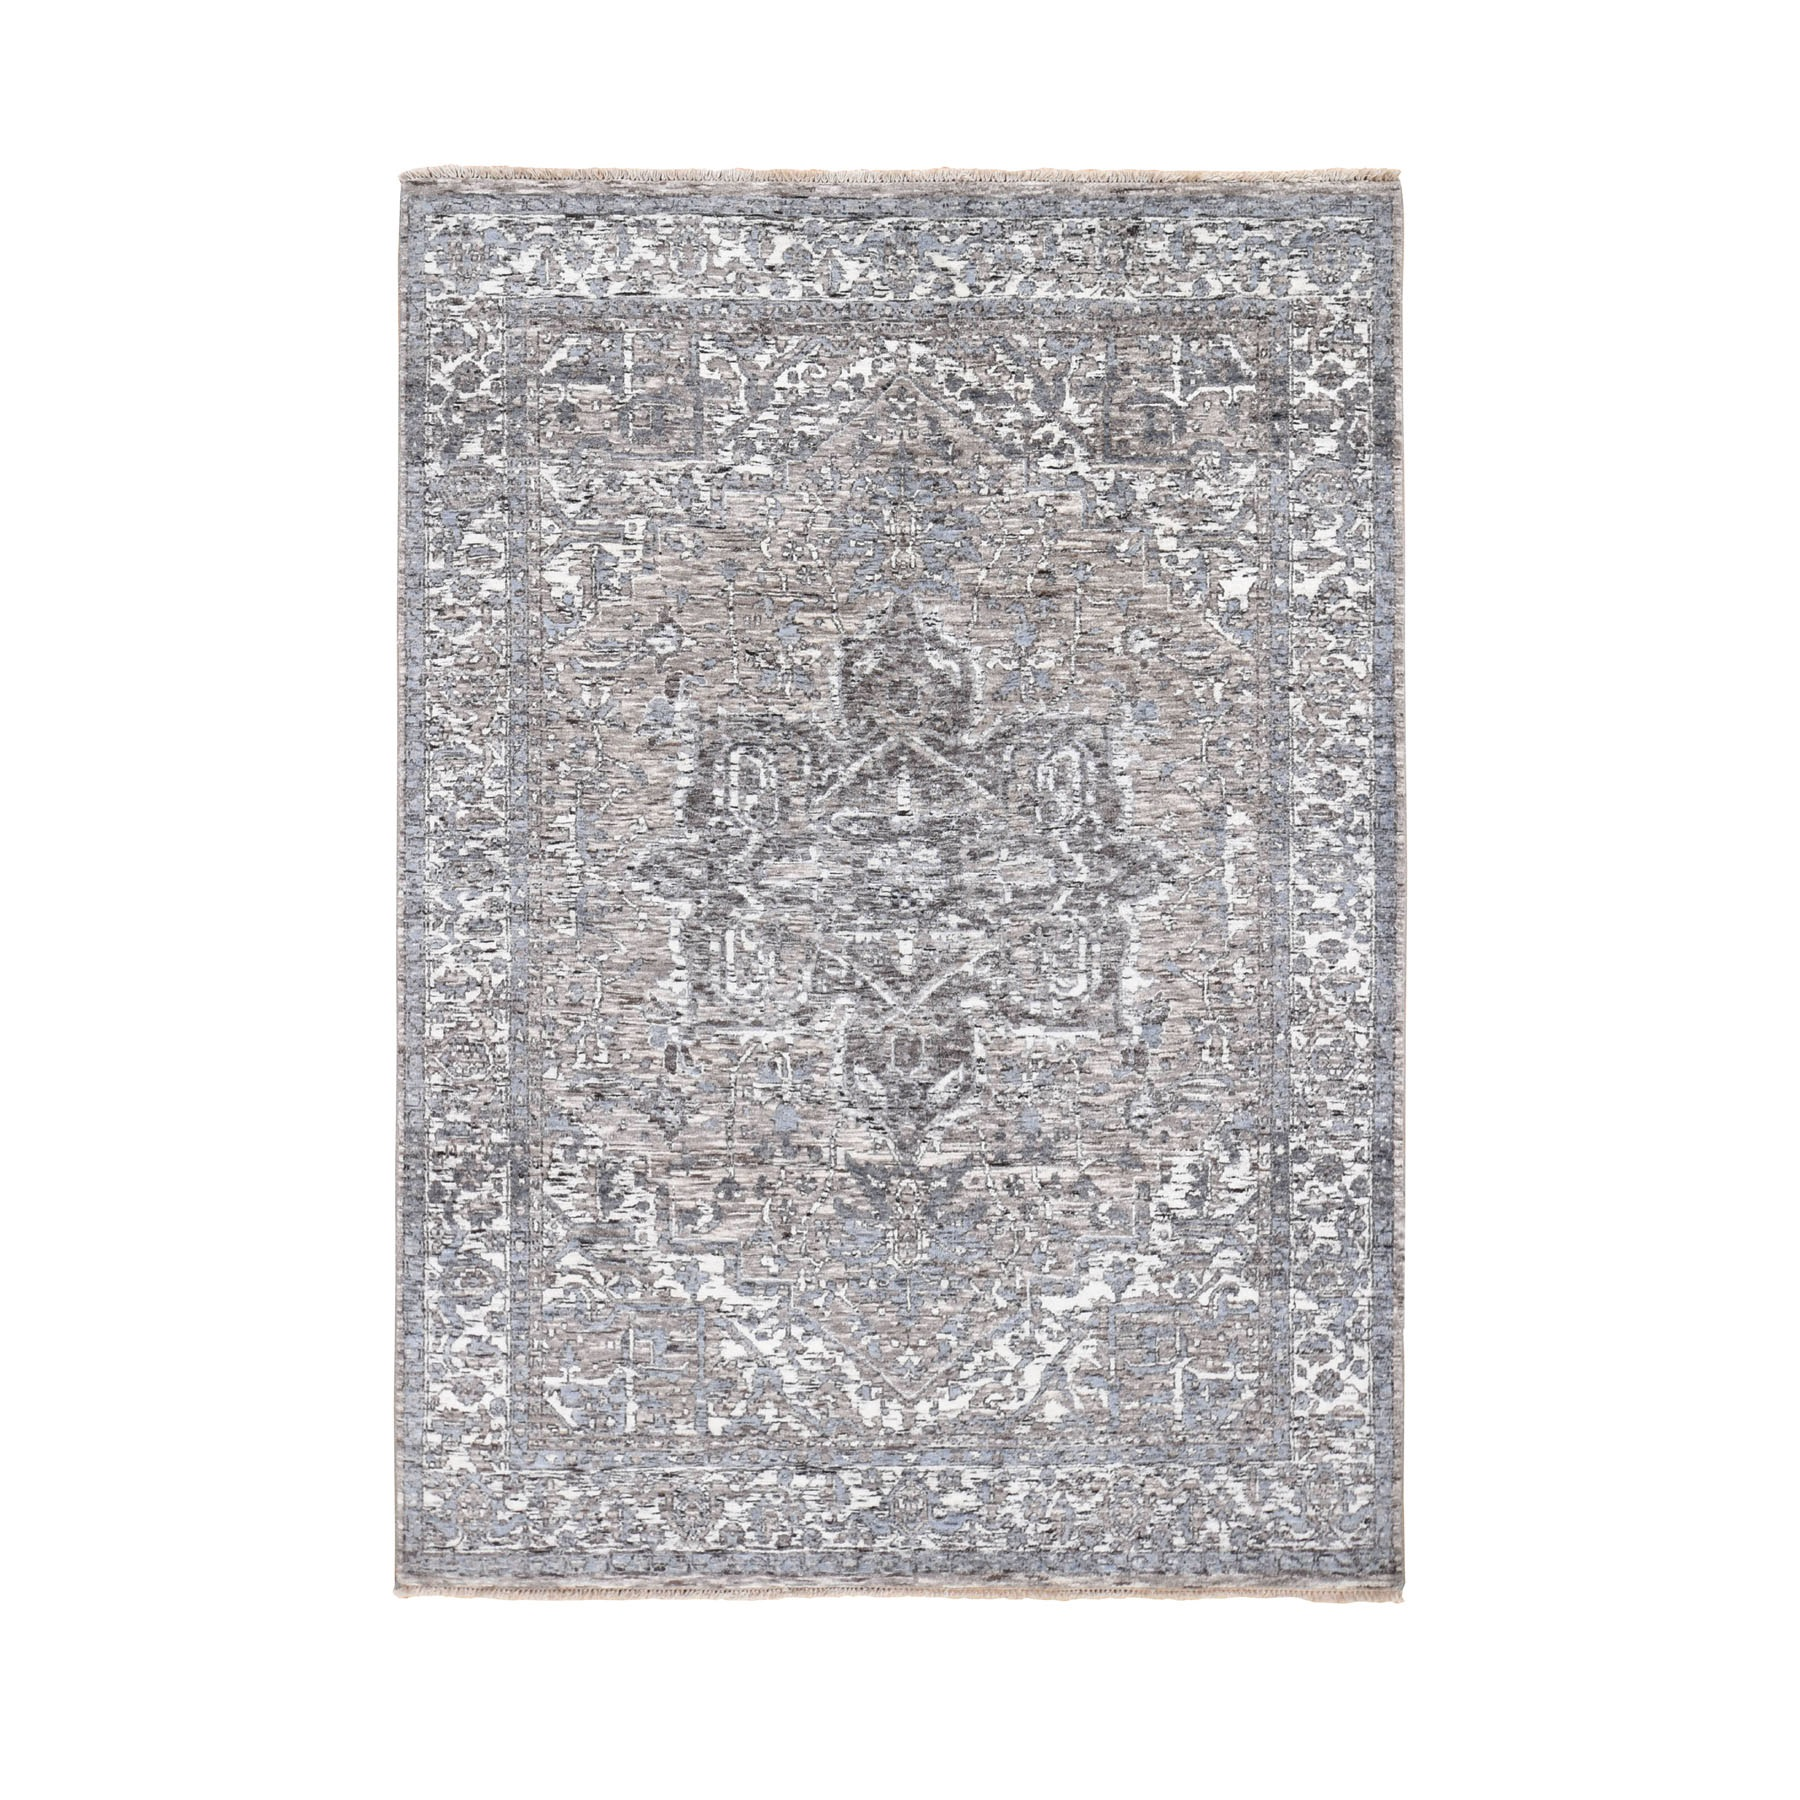 Serapi Heriz and Bakhshayesh Collection Hand Knotted Grey Rug No: 0195990